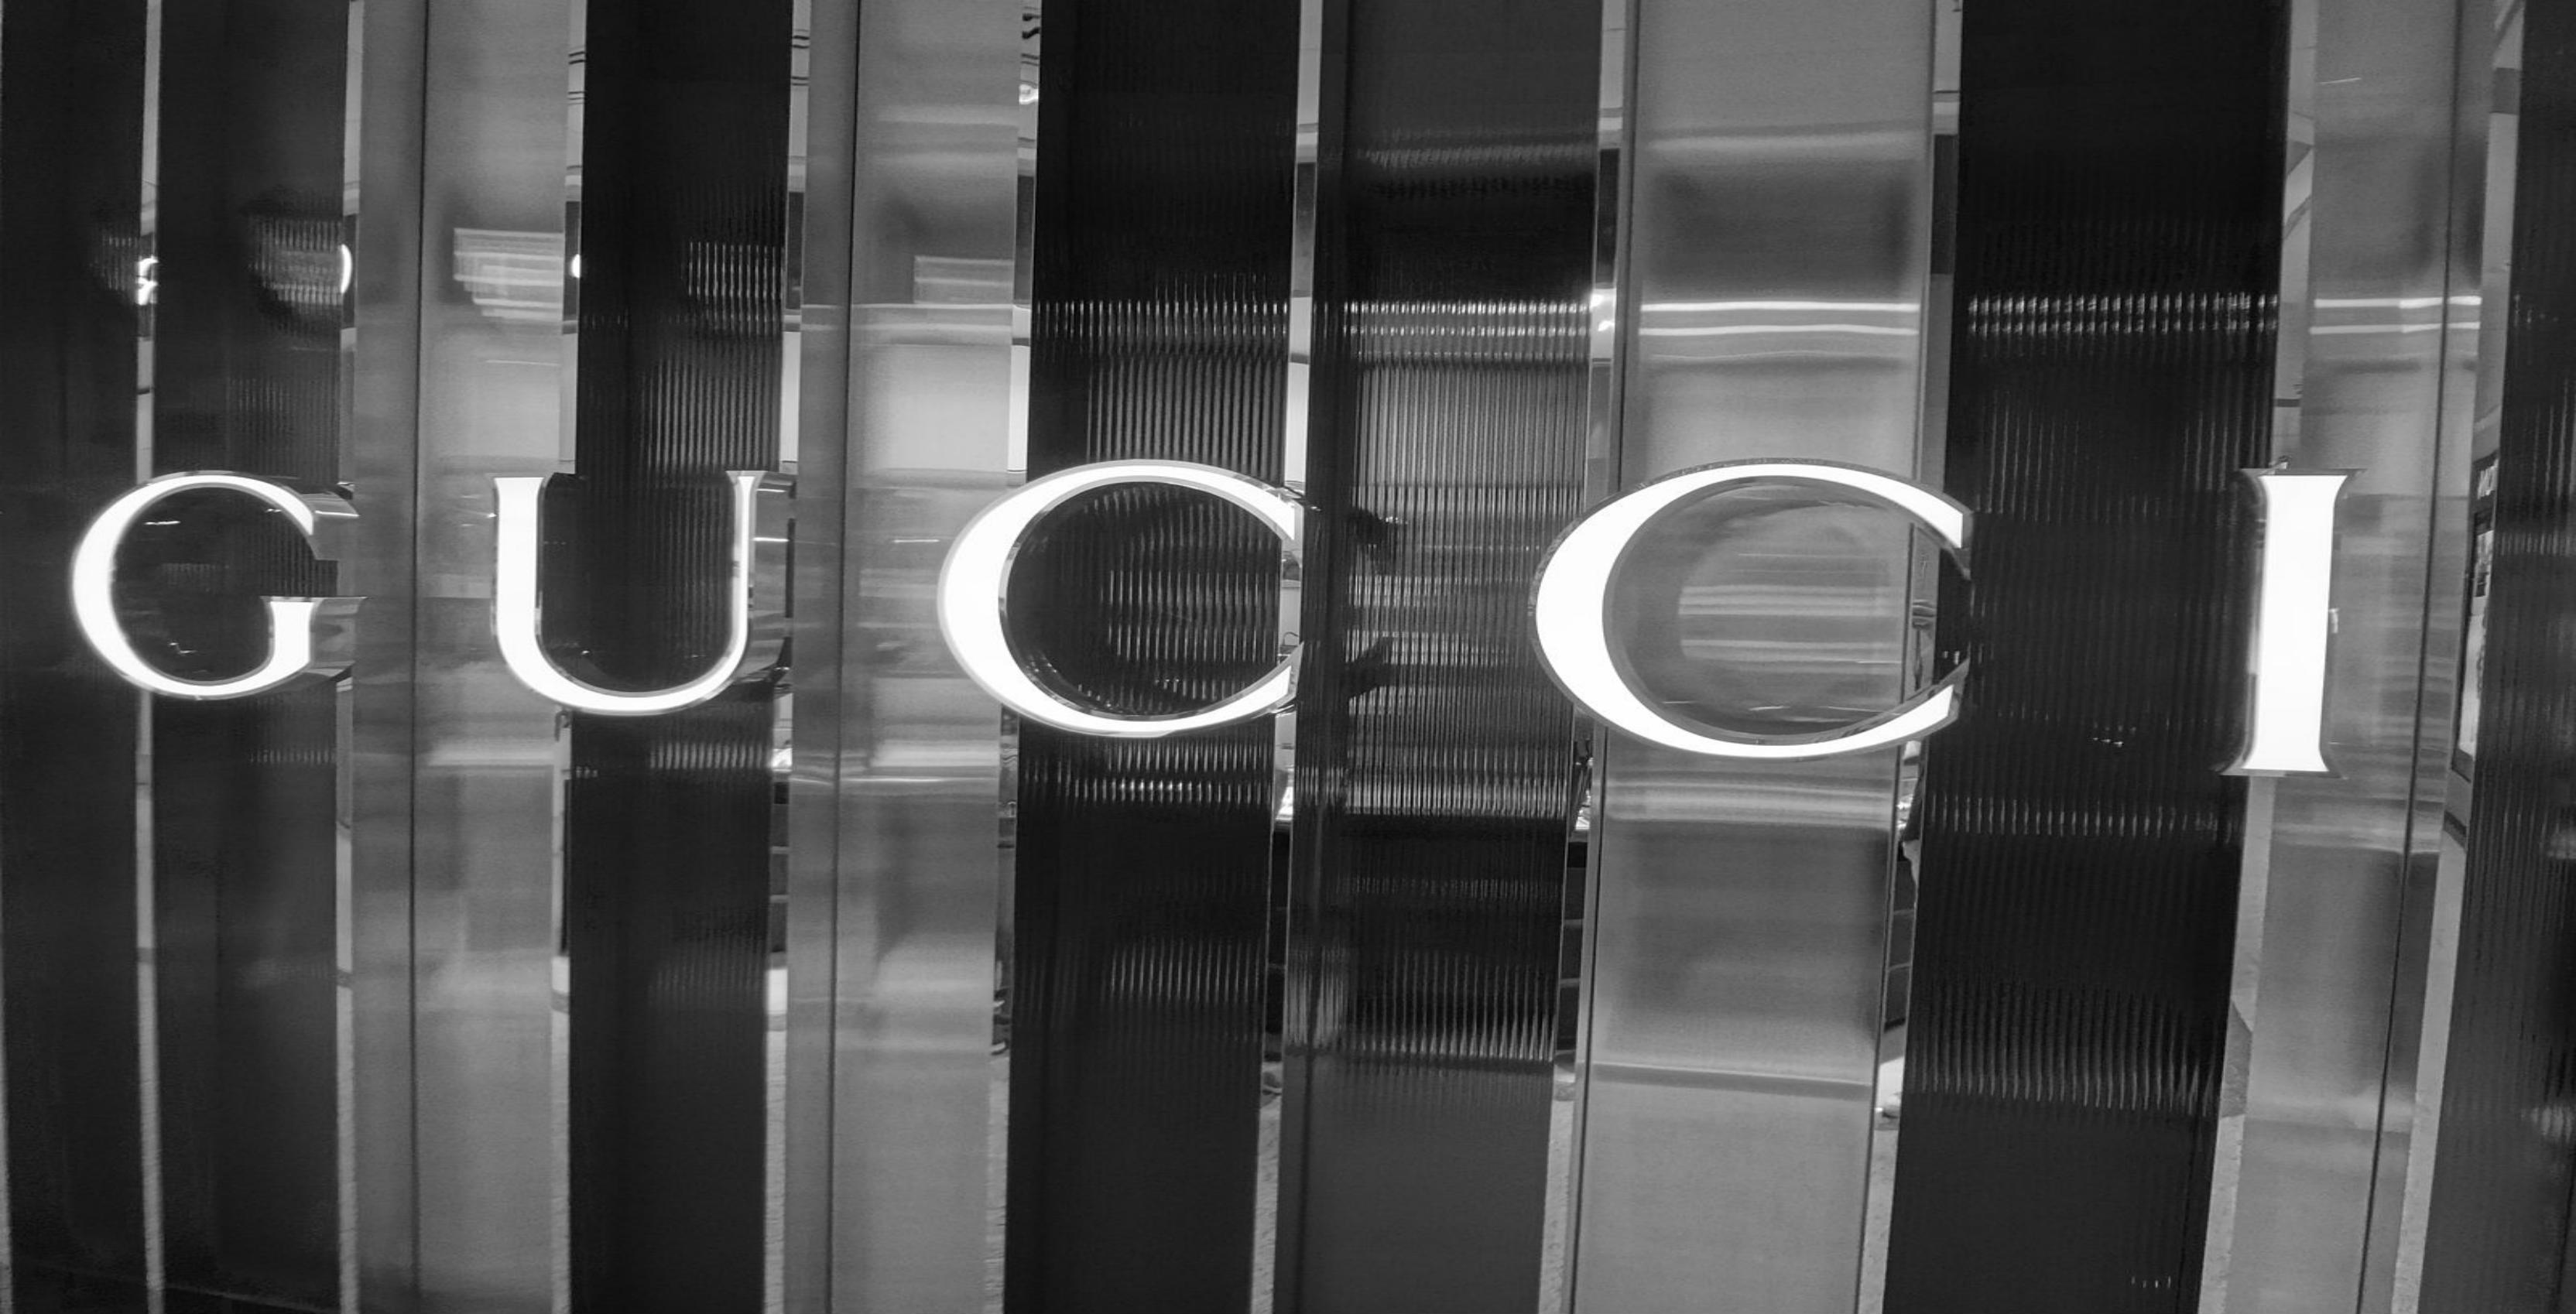 Gucci, Saint Laurent to create apps with Apple